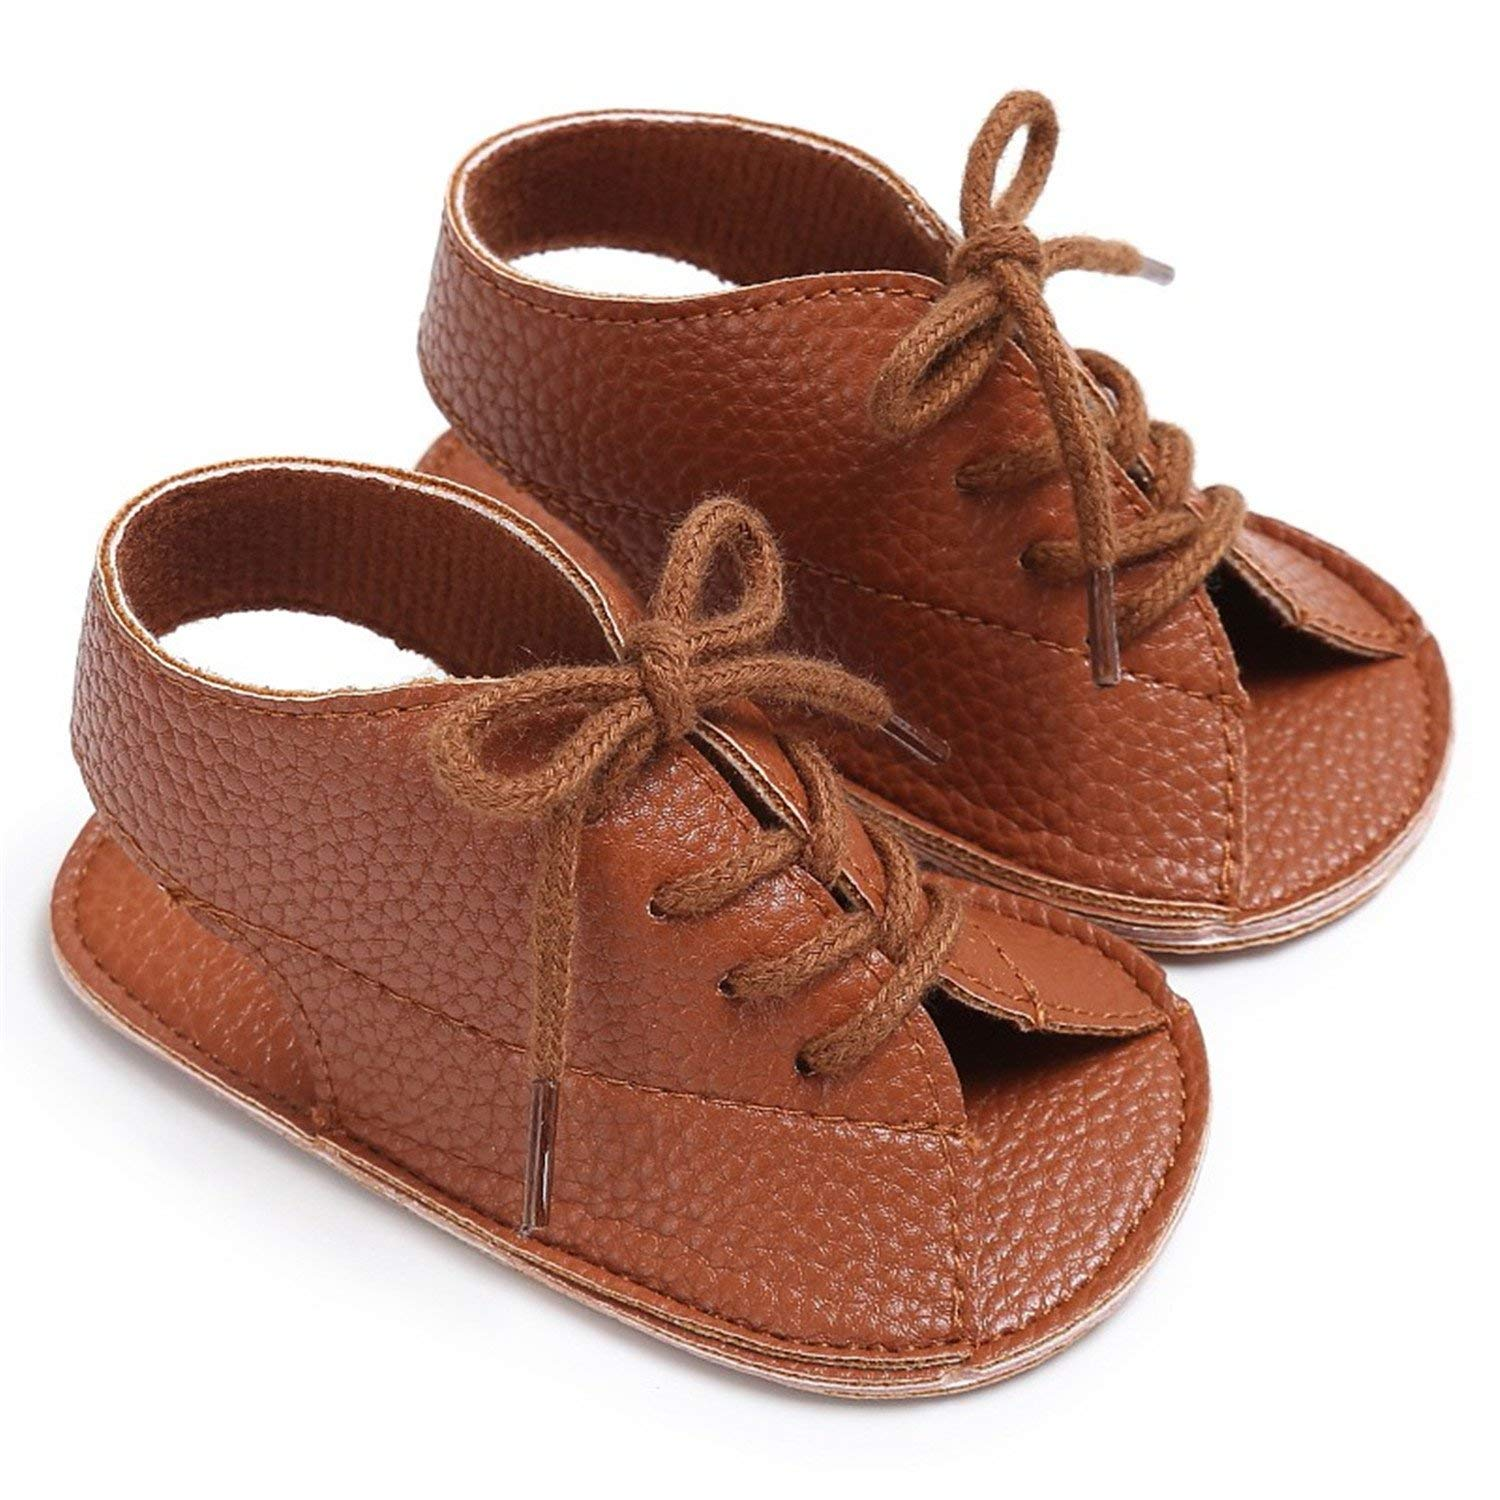 8bd092aa4 Get Quotations · Welcometoo Baby Boys Summer Handsome Lace-up PU Leather  Soft Soled Anti-Slip Newborn